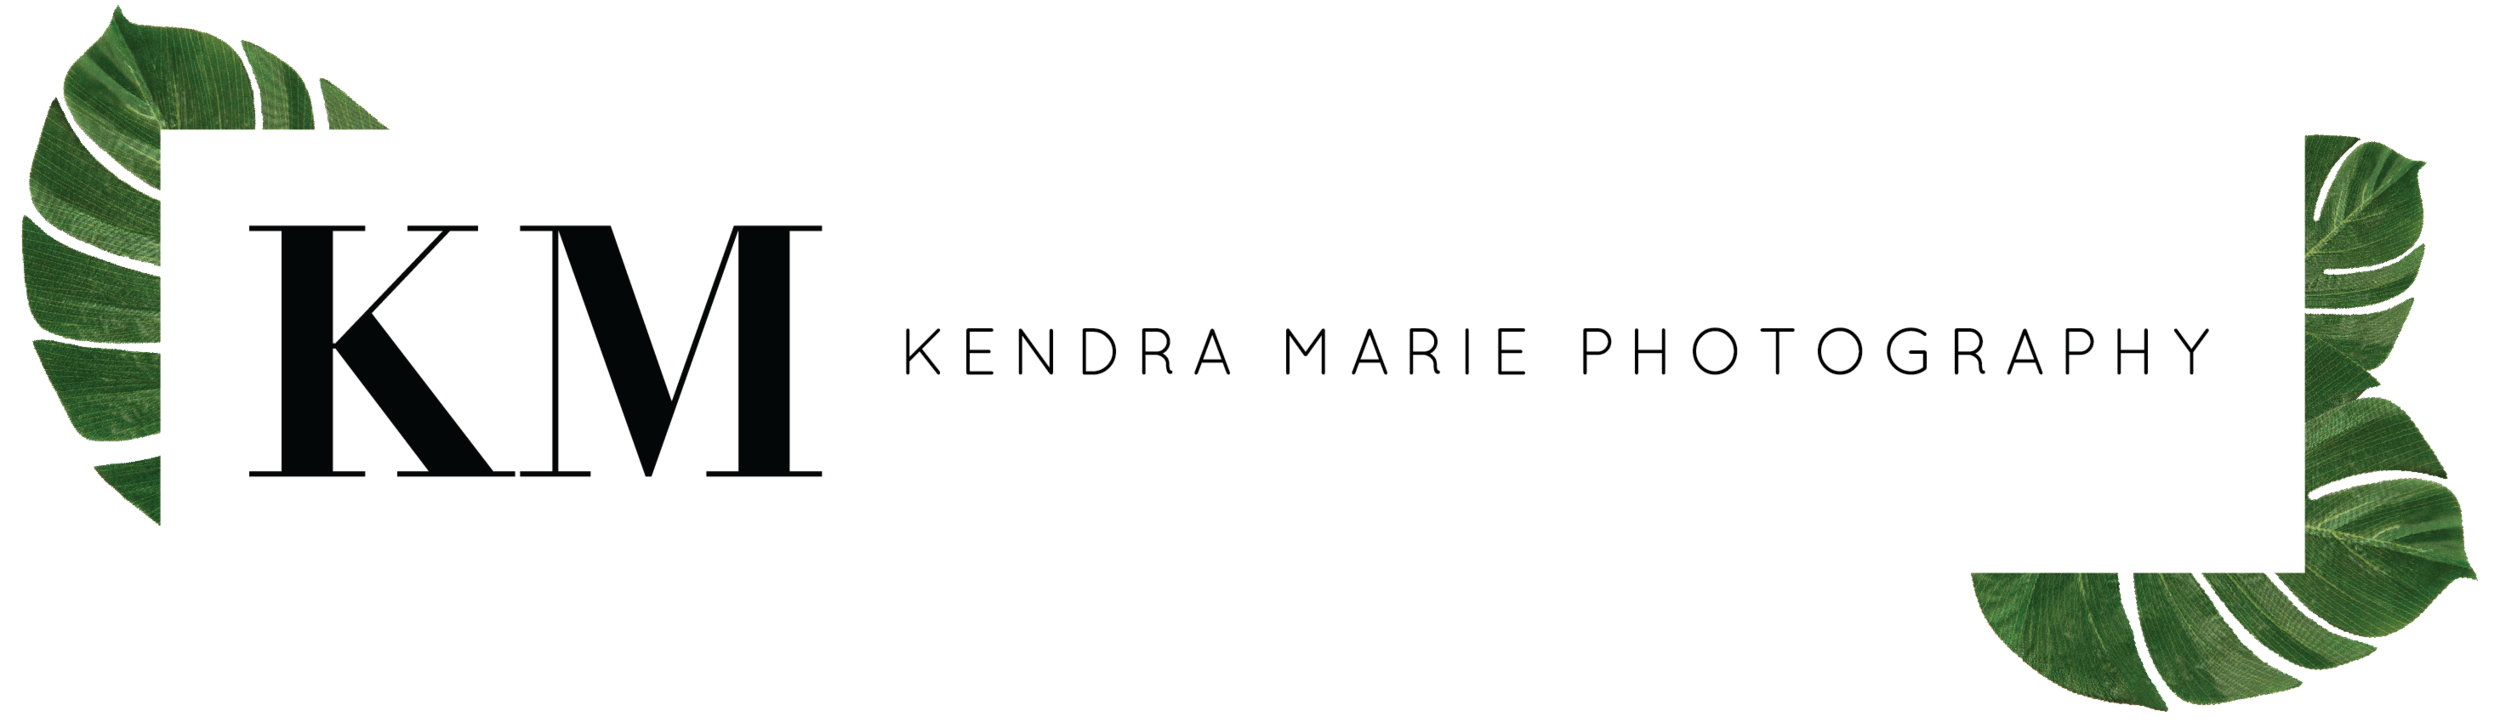 Kendra Marie Photography Designs_Alternate Logo.png